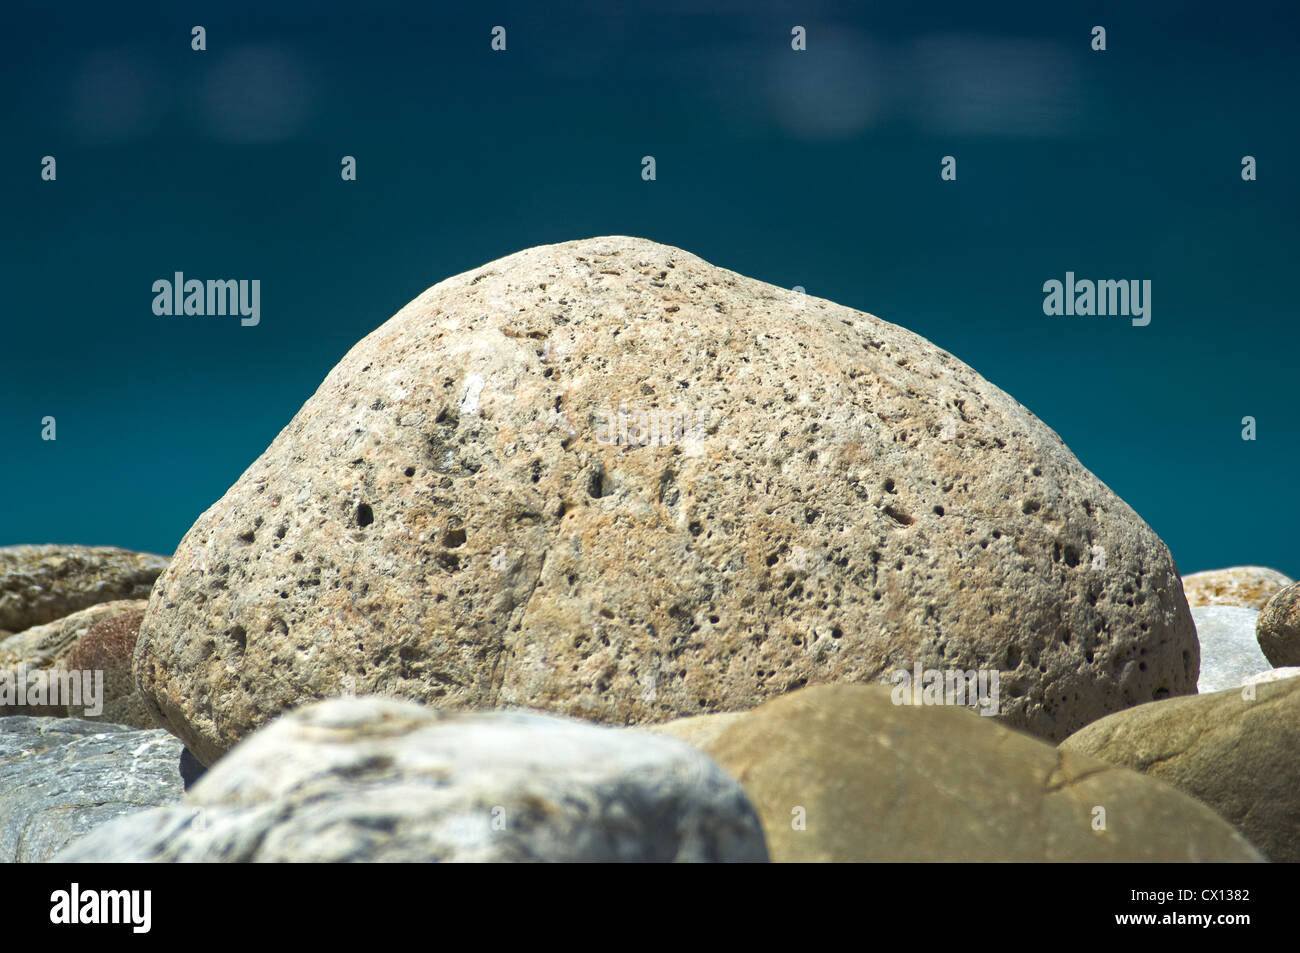 Close-up of a big pebble on a pebble beach with the blue sea in the background Stock Photo